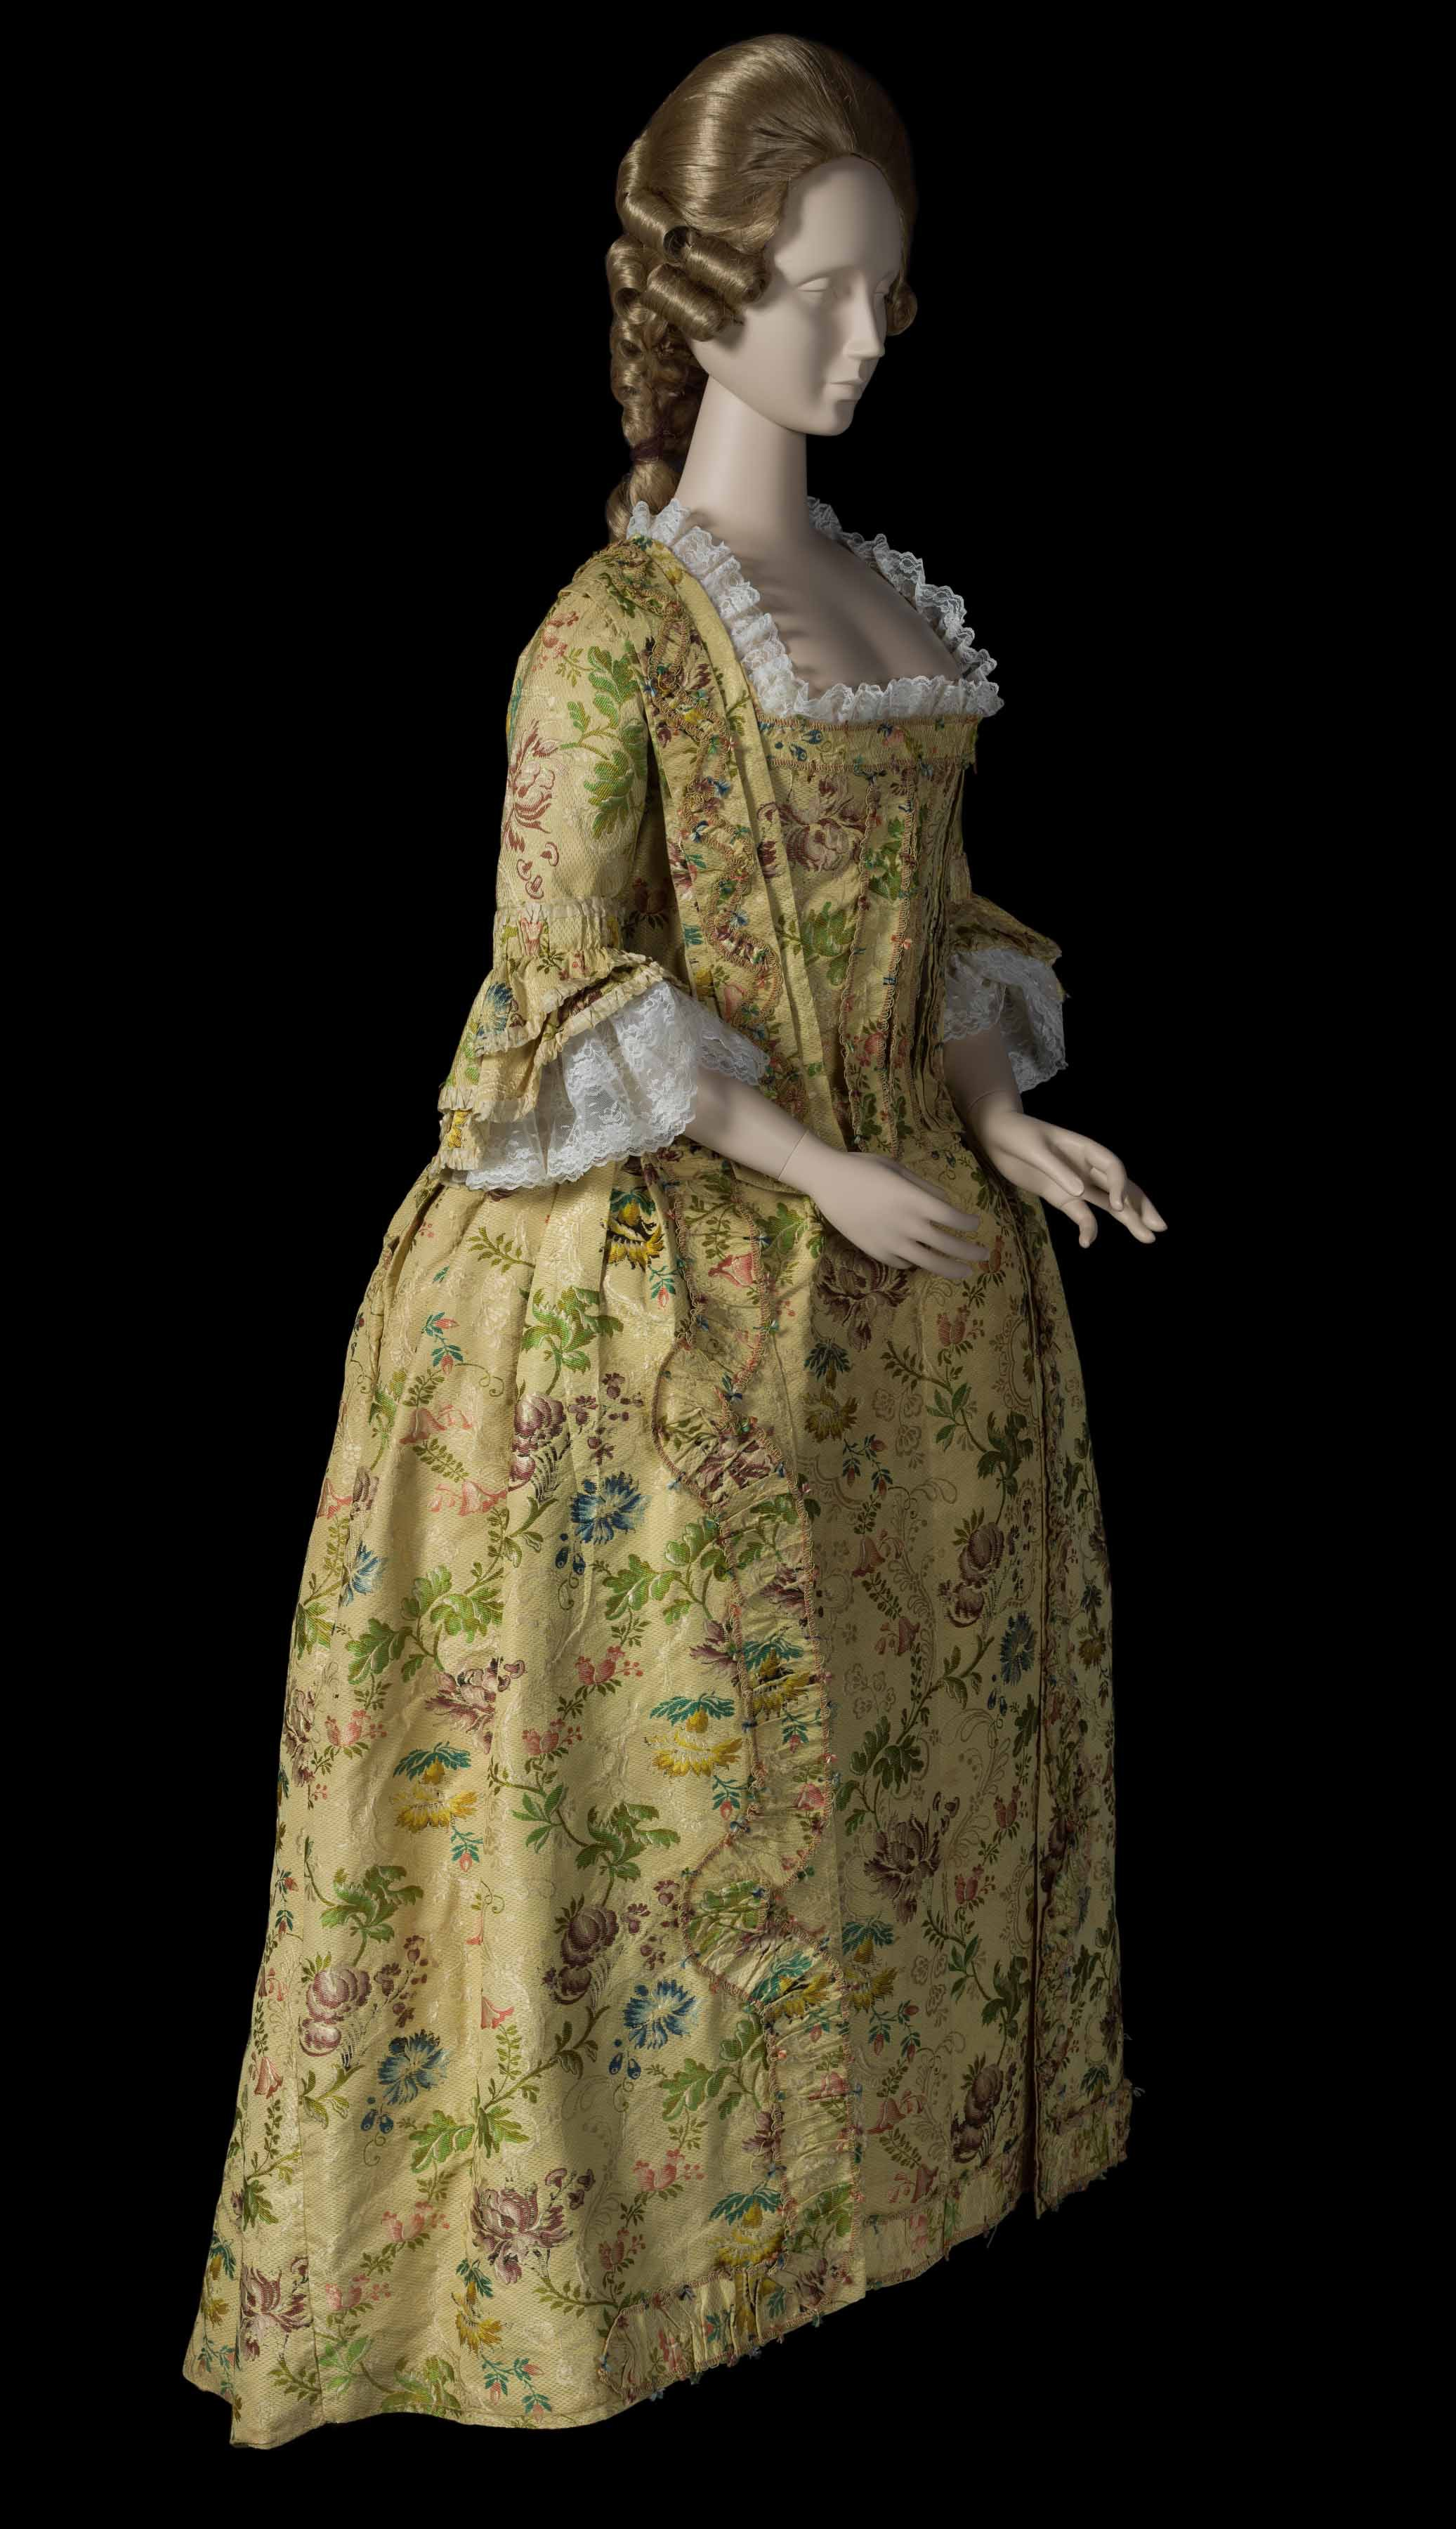 A photo of Jane Sloan LeConte gown